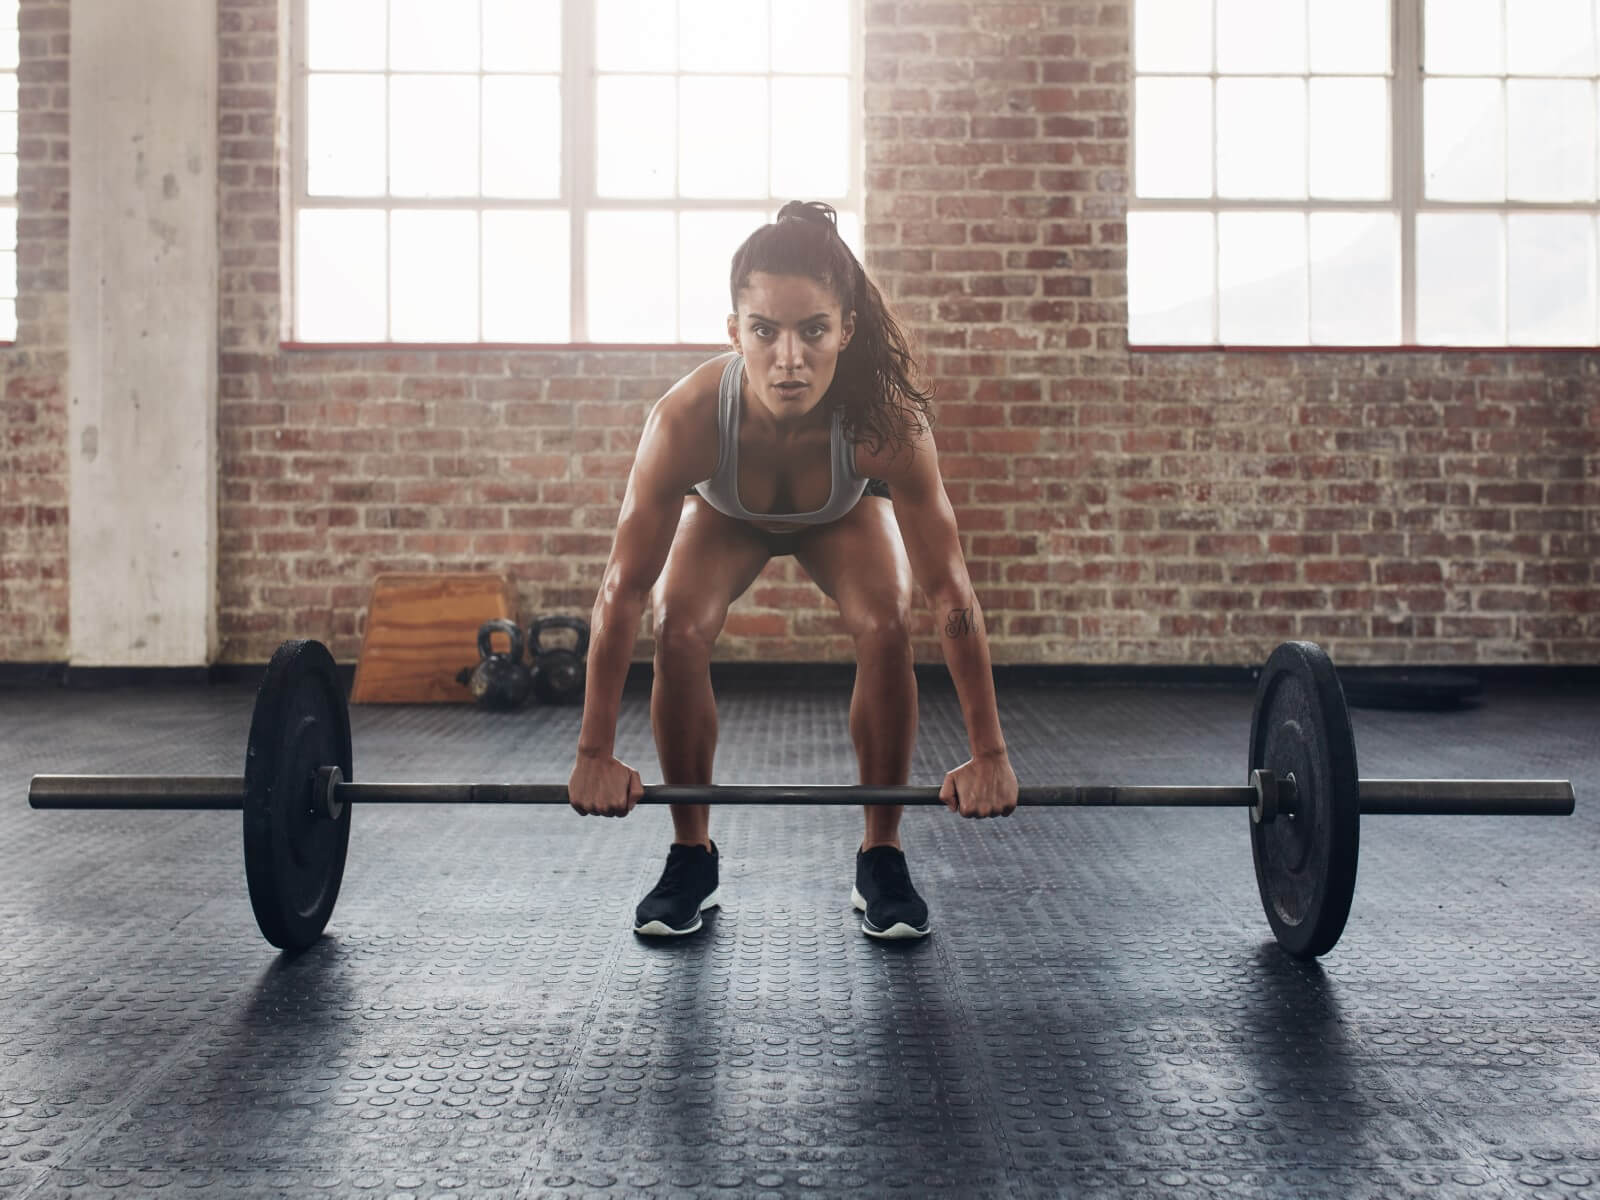 Woman with pony tail preparing for lift in women's weightlifting shoes.